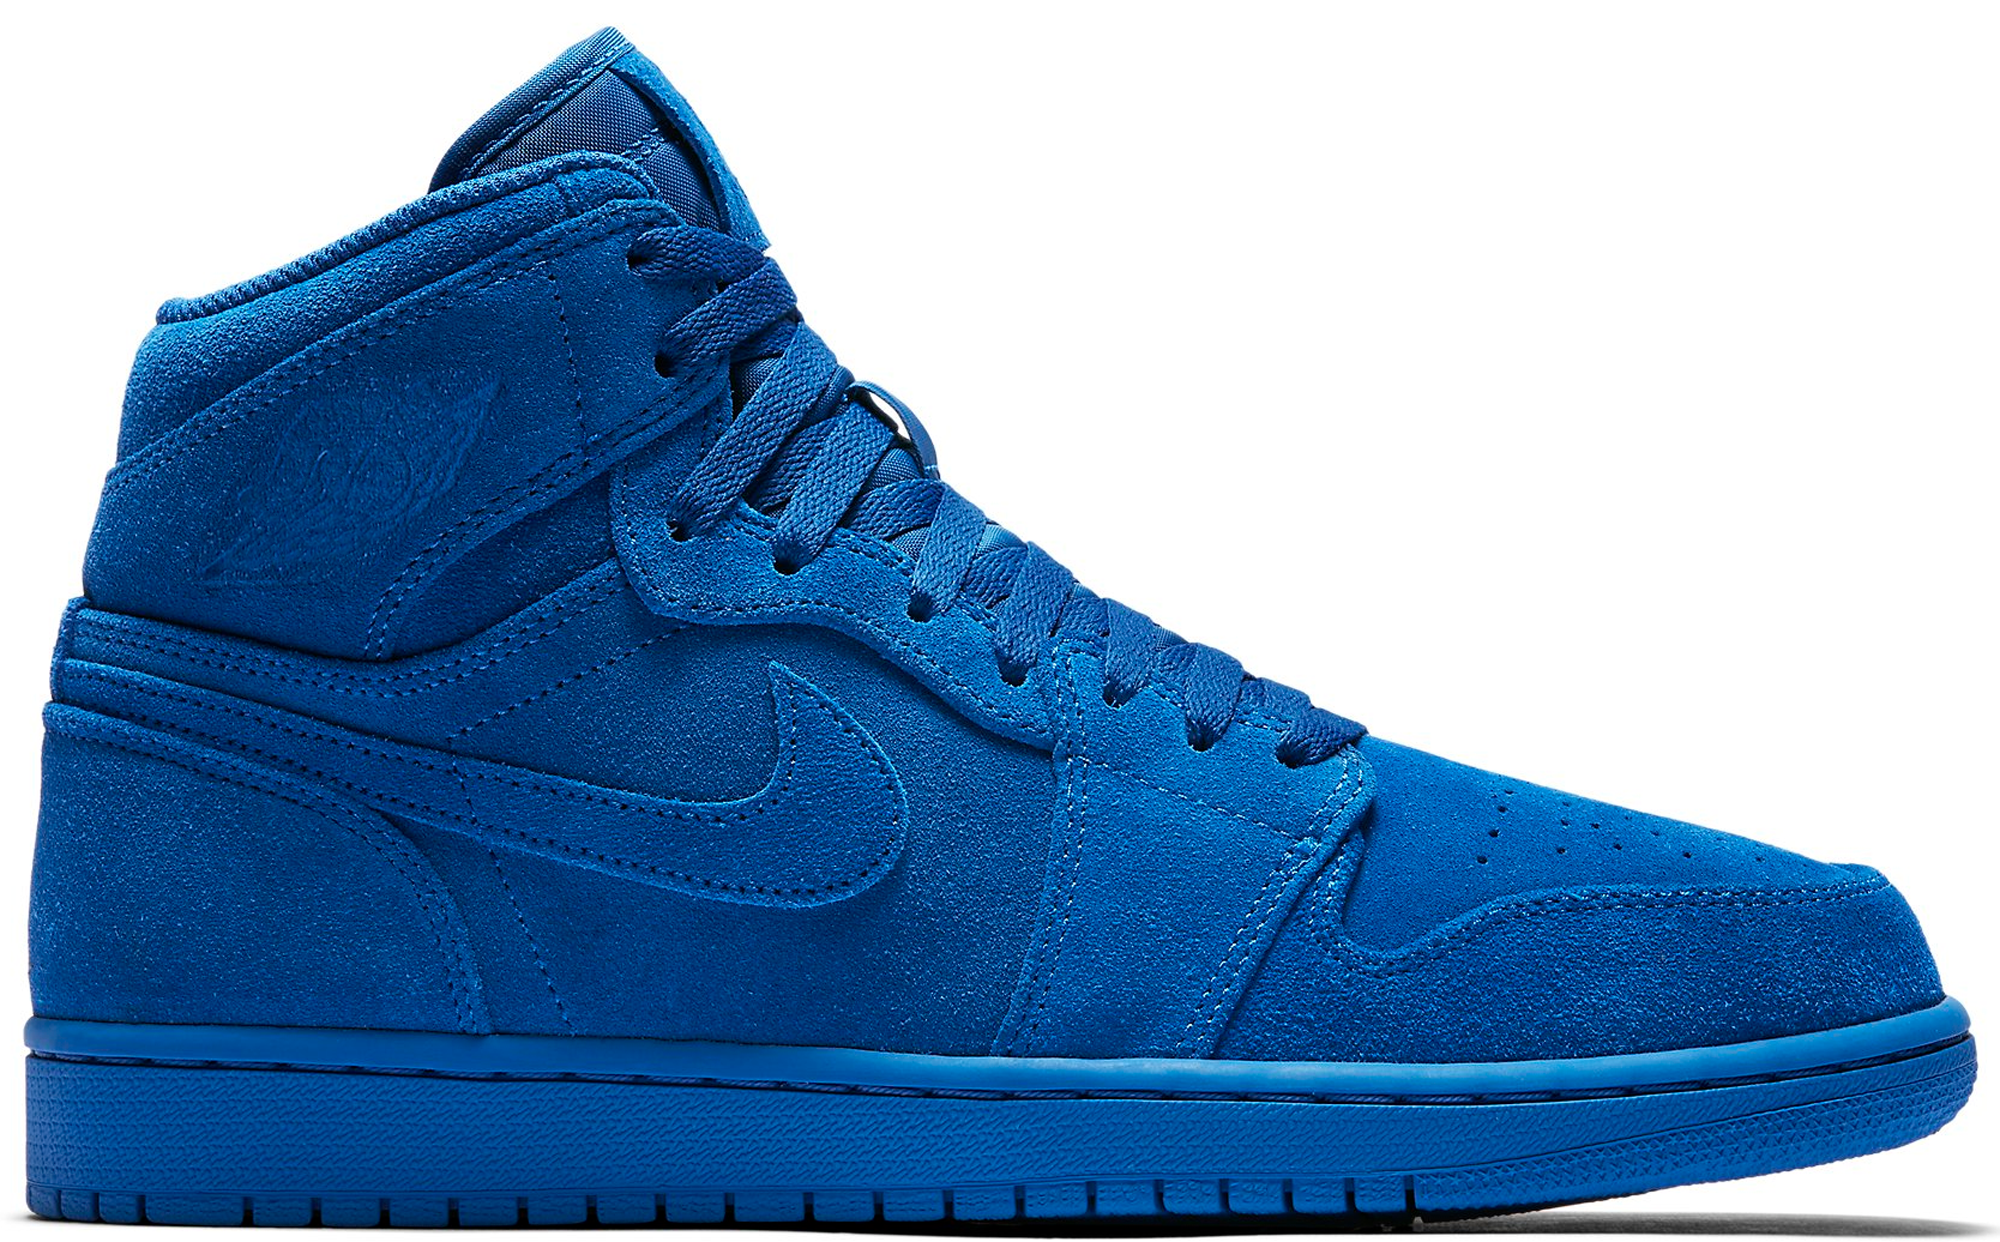 6e4ee91f7d527e Air Jordan 1 Retro High Royal Suede - StockX News